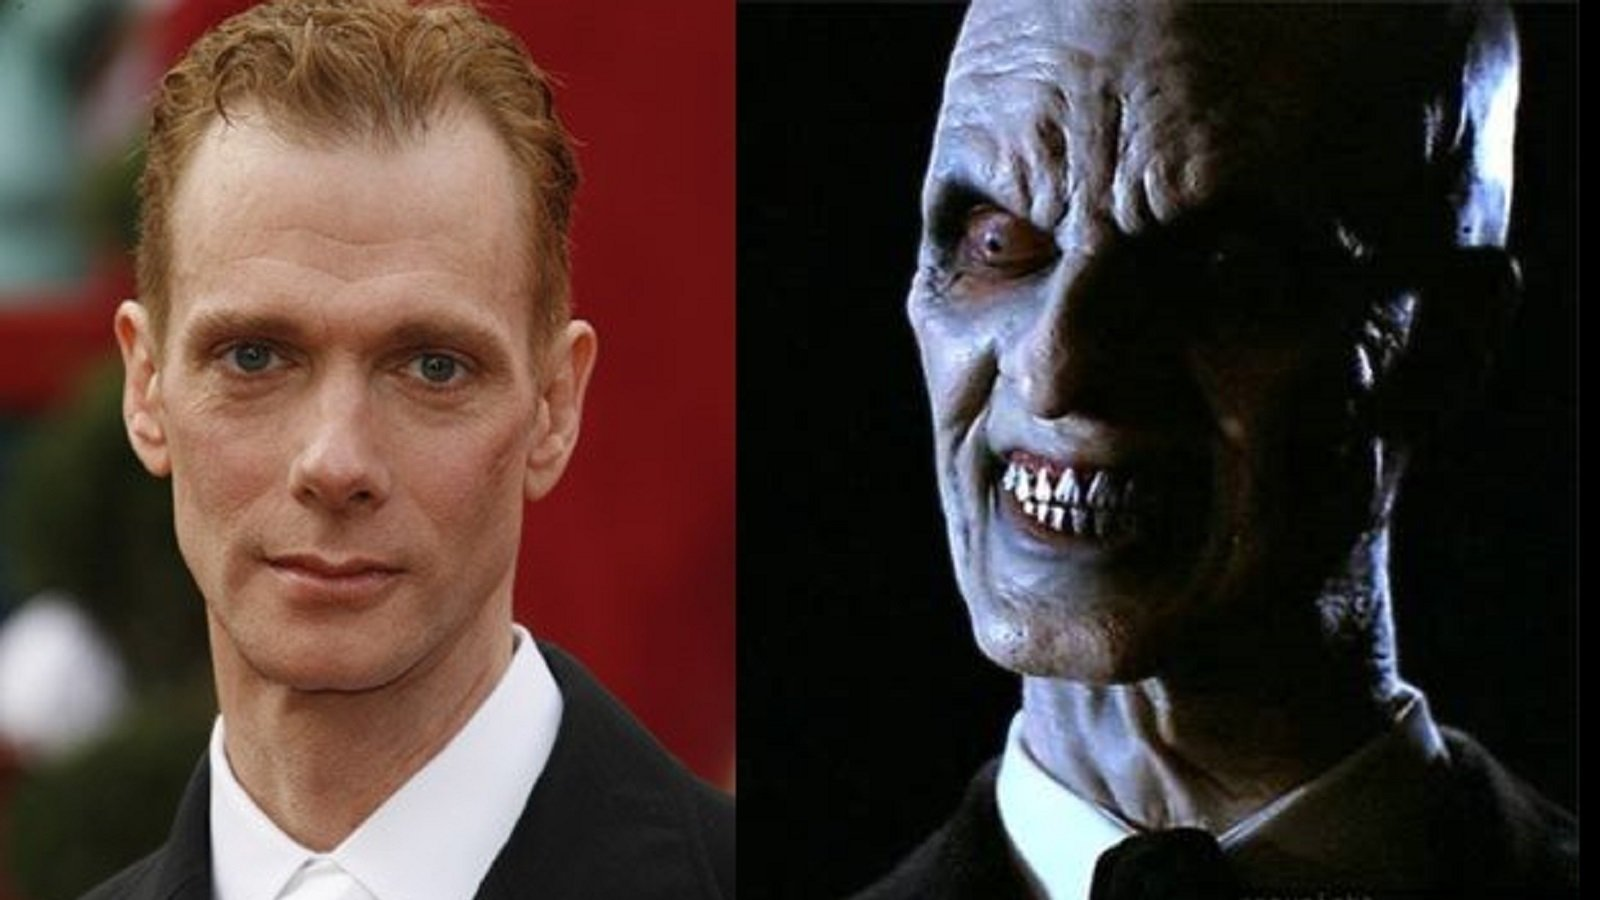 doug jones crimson peakdoug jones vs muhammad ali, doug jones height, doug jones flash, doug jones family, doug jones as abe sapien, doug jones linkedin, doug jones actor, doug jones movie fights, doug jones crimson peak, doug jones singing, doug jones characters, doug jones boxer, doug jones bass, doug jones instagram, doug jones screen junkies, doug jones, doug jones imdb, doug jones pan labyrinth, doug jones the strain, doug jones twitter